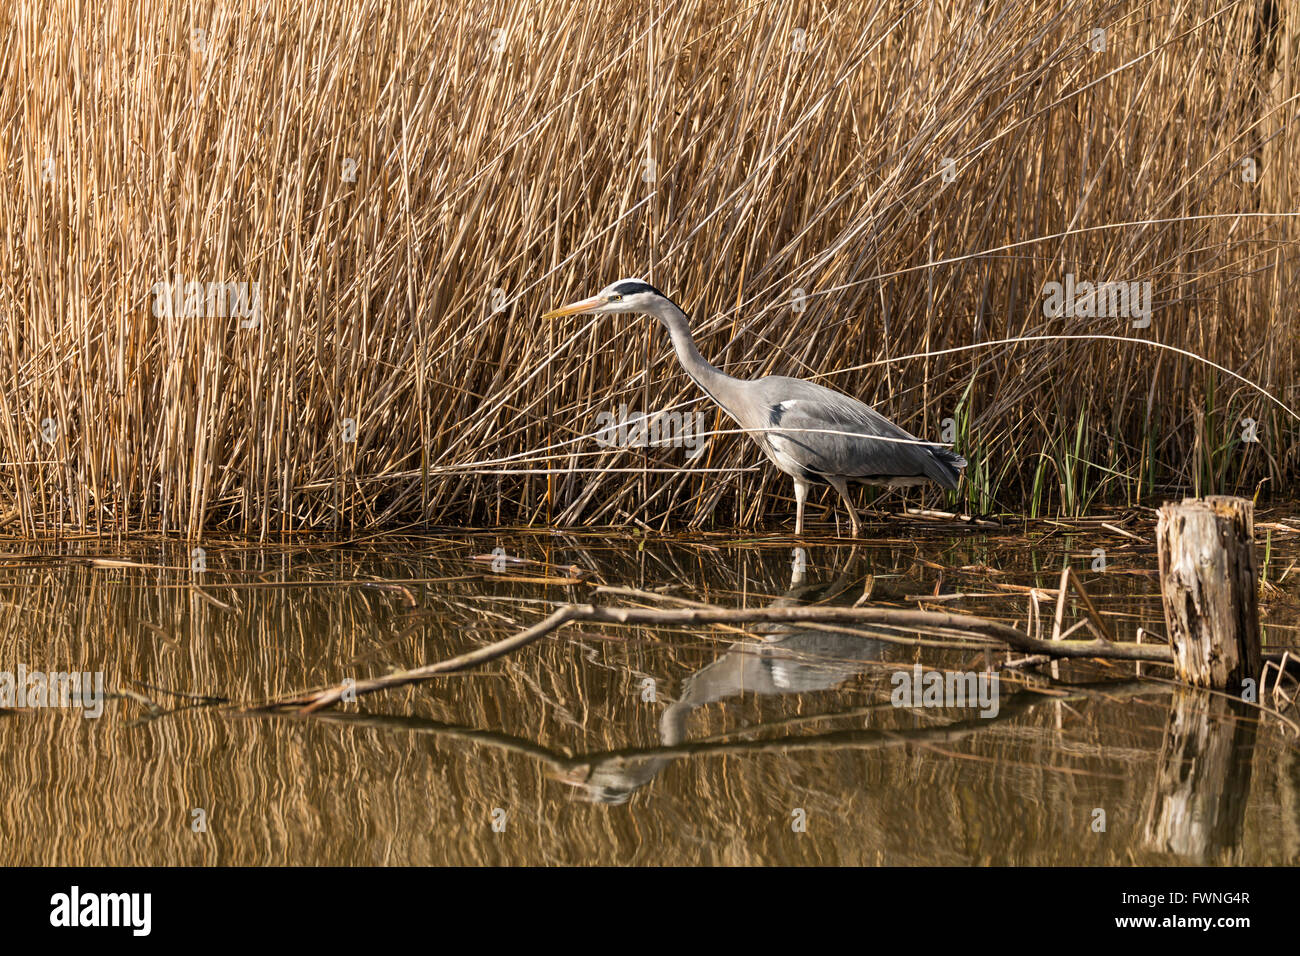 Grey Heron Standing In The Water Of A Pond Next To Reeds And With A Stock Photo Royalty Free